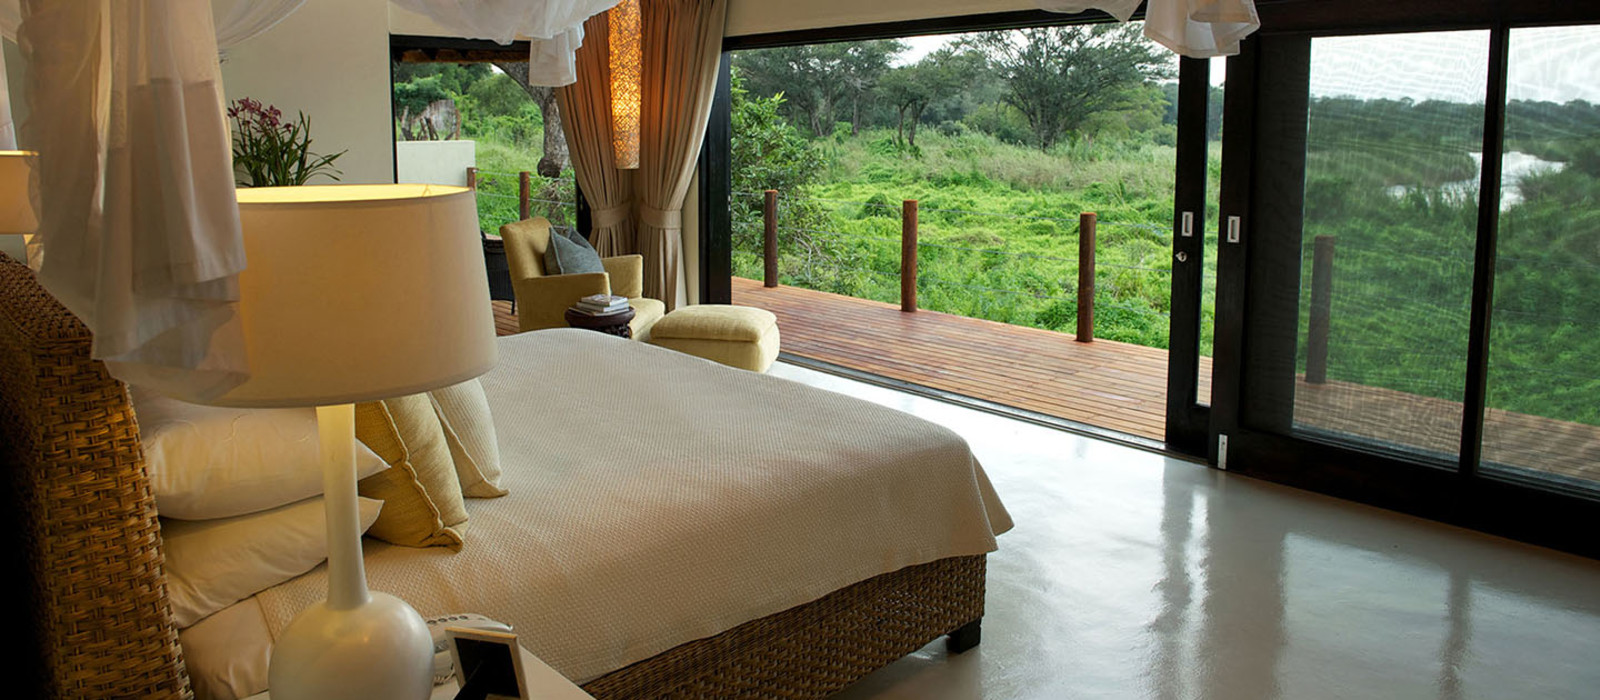 Hotel Lion Sands River Lodge South Africa